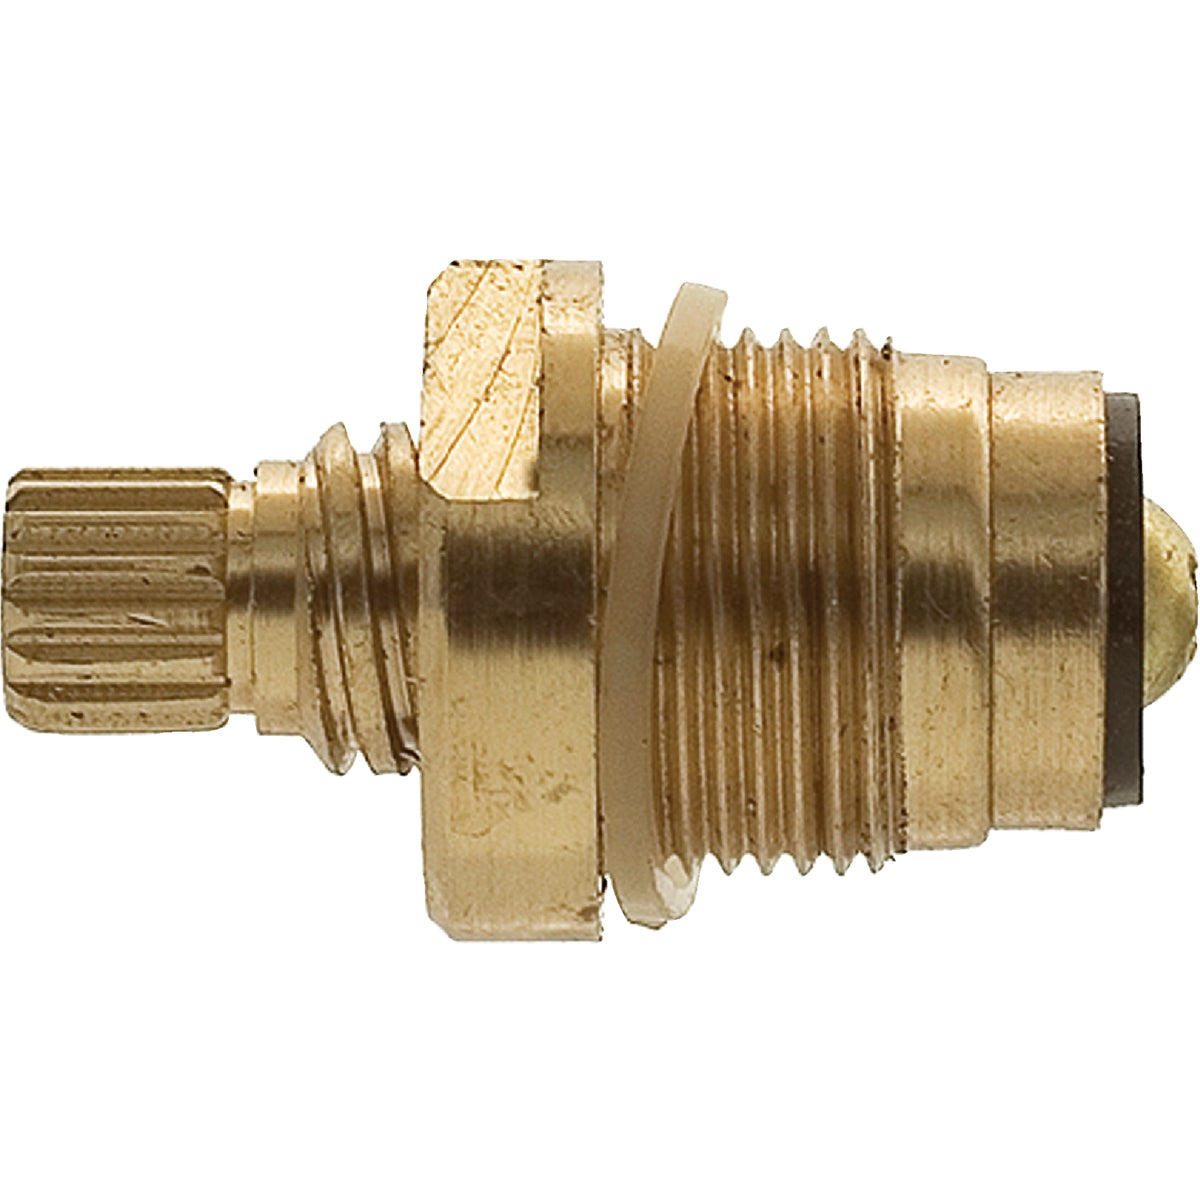 1C-7H CENTRAL BRASS STEM